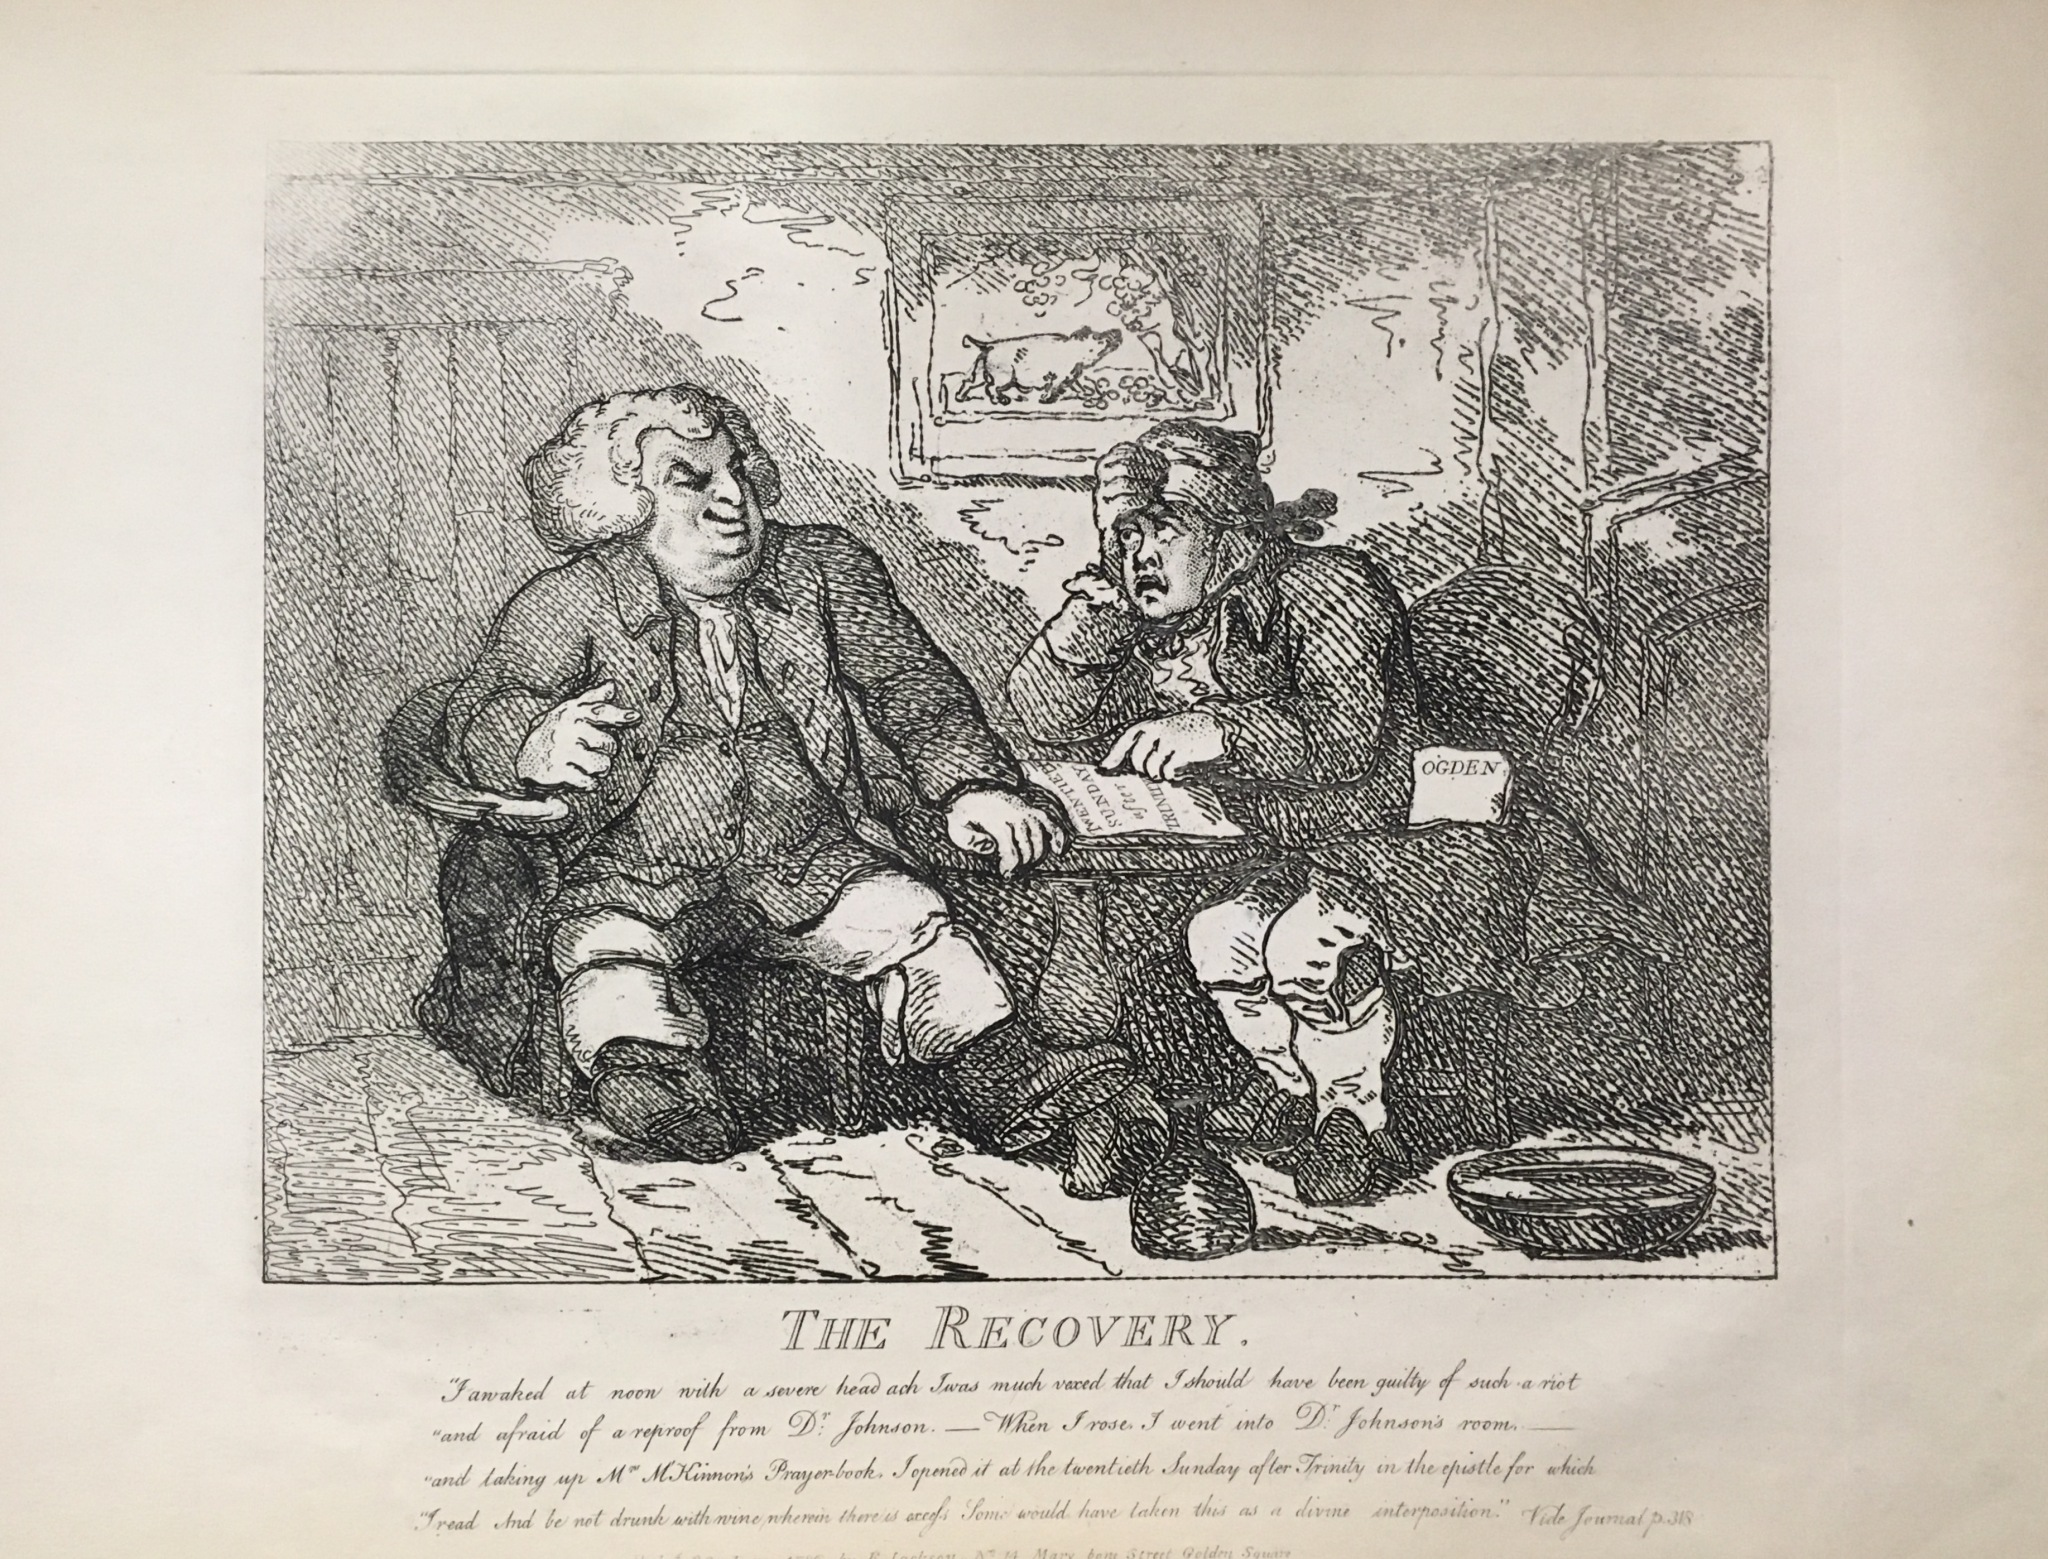 A caricature of Johnson and Boswell, the first with a look of amusement, and the latter distressed and reading verse, in addition to the text below.